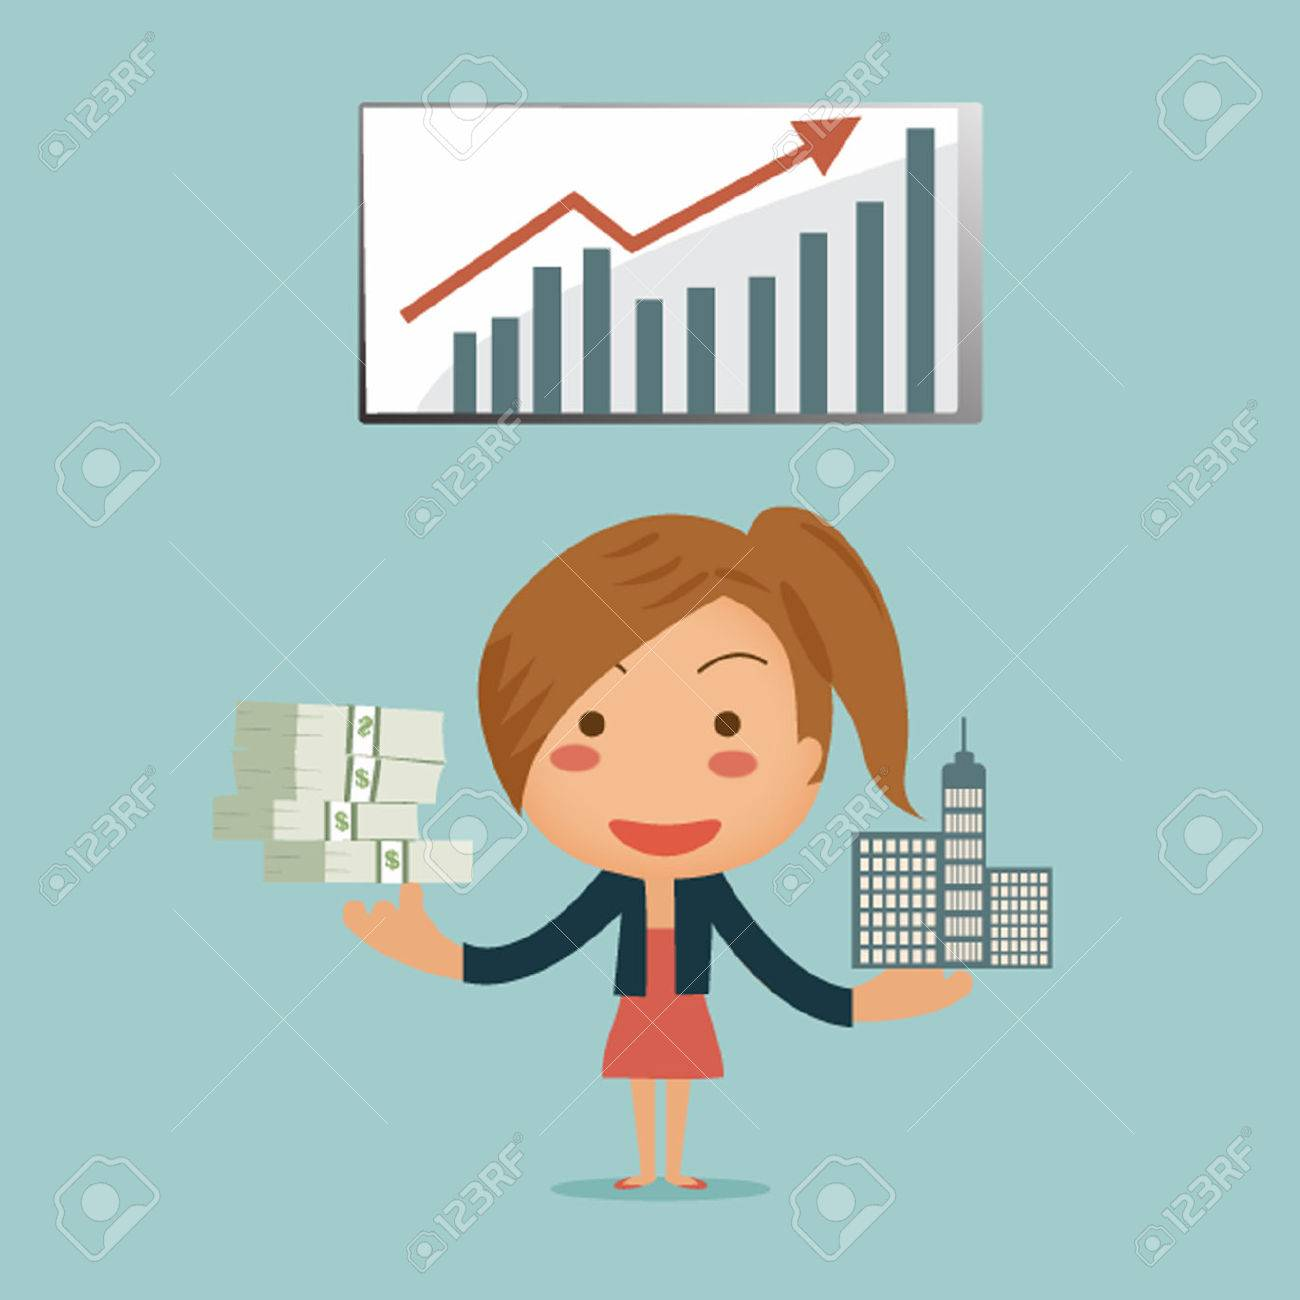 Business woman showing her passive income from asset infront of graph background - 27297231